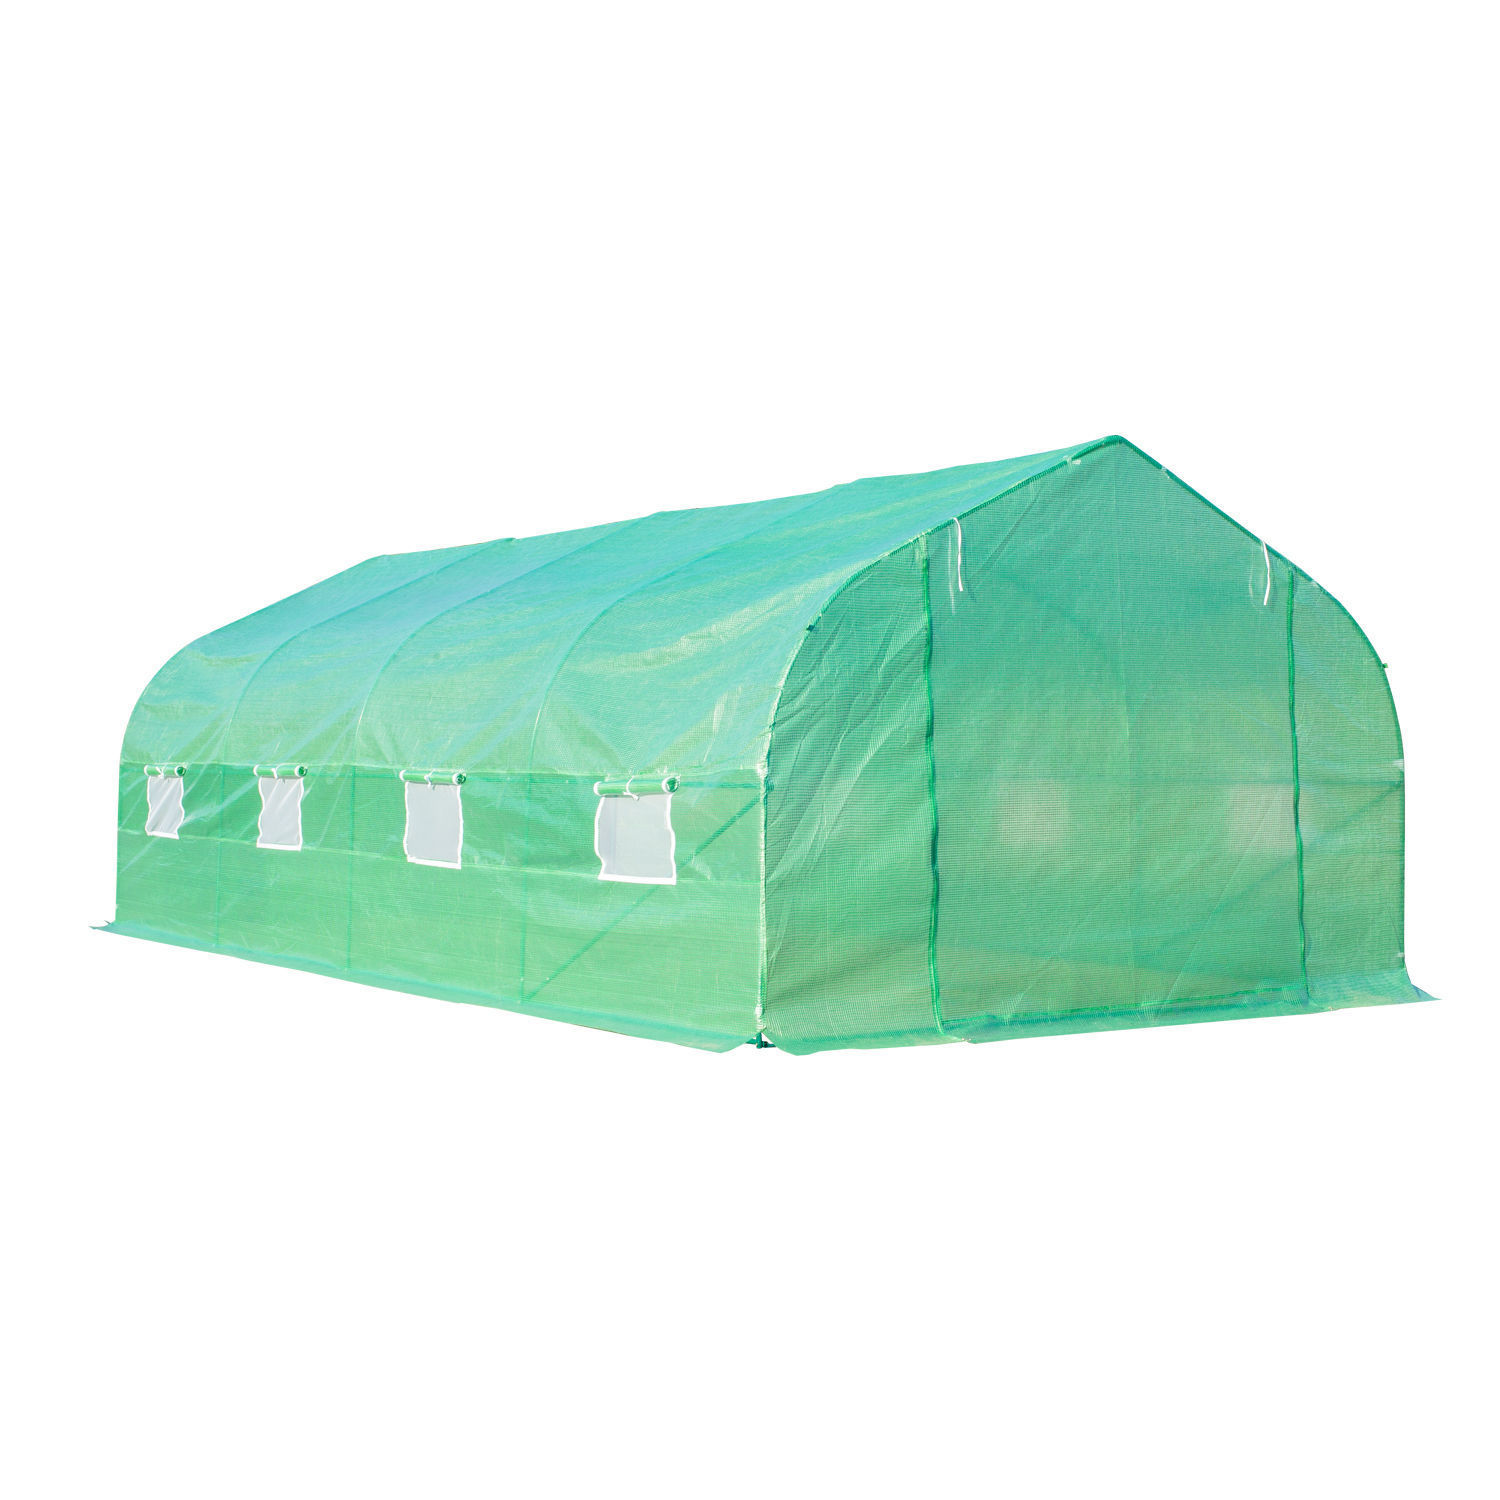 Ktaxon Green house 20' X10' X7' Larger Walk In Greenhouse Outdoor Patio courtyard... by Ktaxon